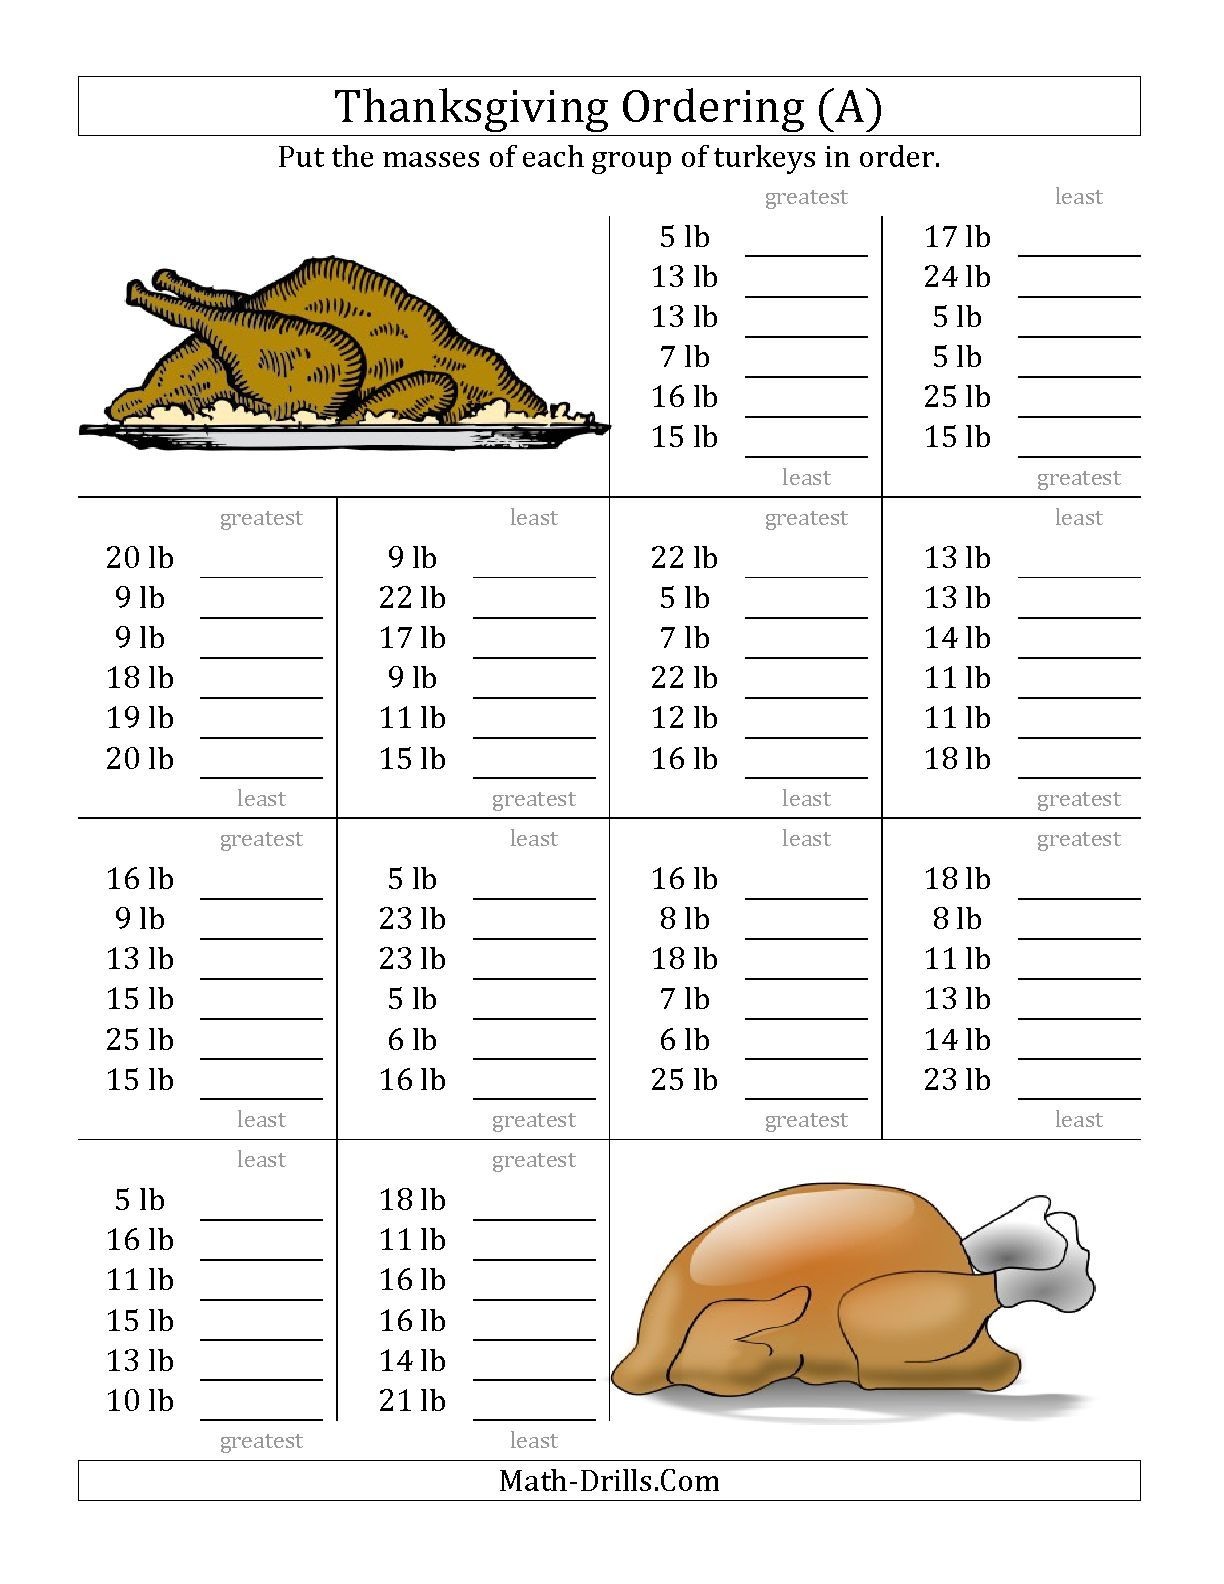 Worksheets Thanksgiving Math Worksheets the ordering turkey masses in pounds a math worksheet from thanksgiving page at drills com